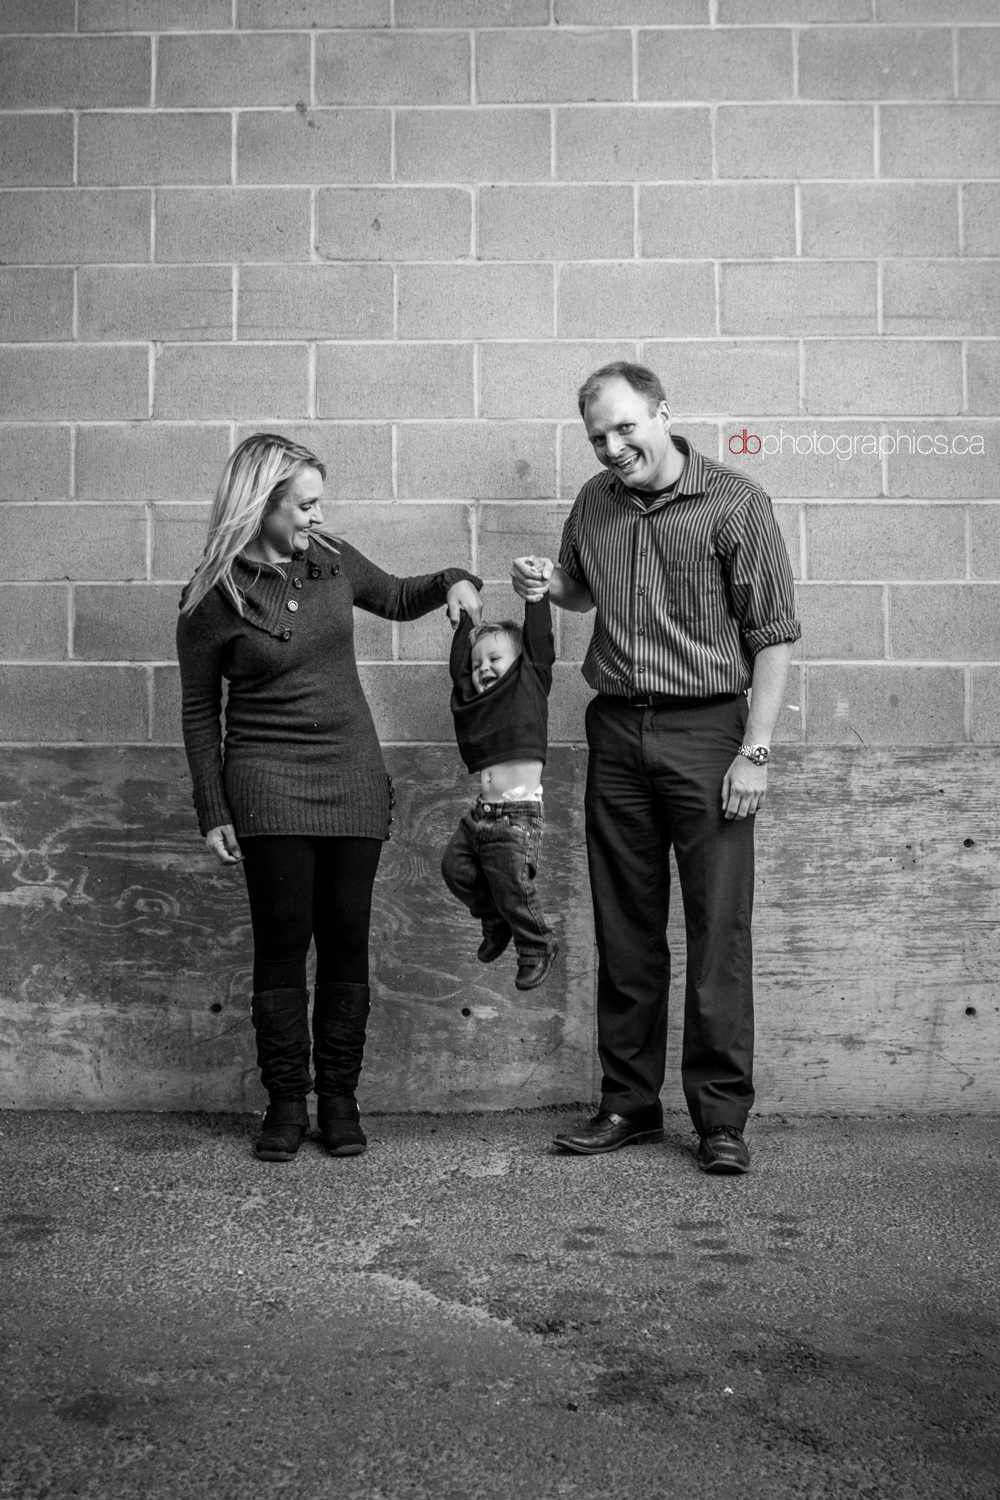 Biddy, Scott & Thomas Family Shoot - 20130923 - 0012.jpg